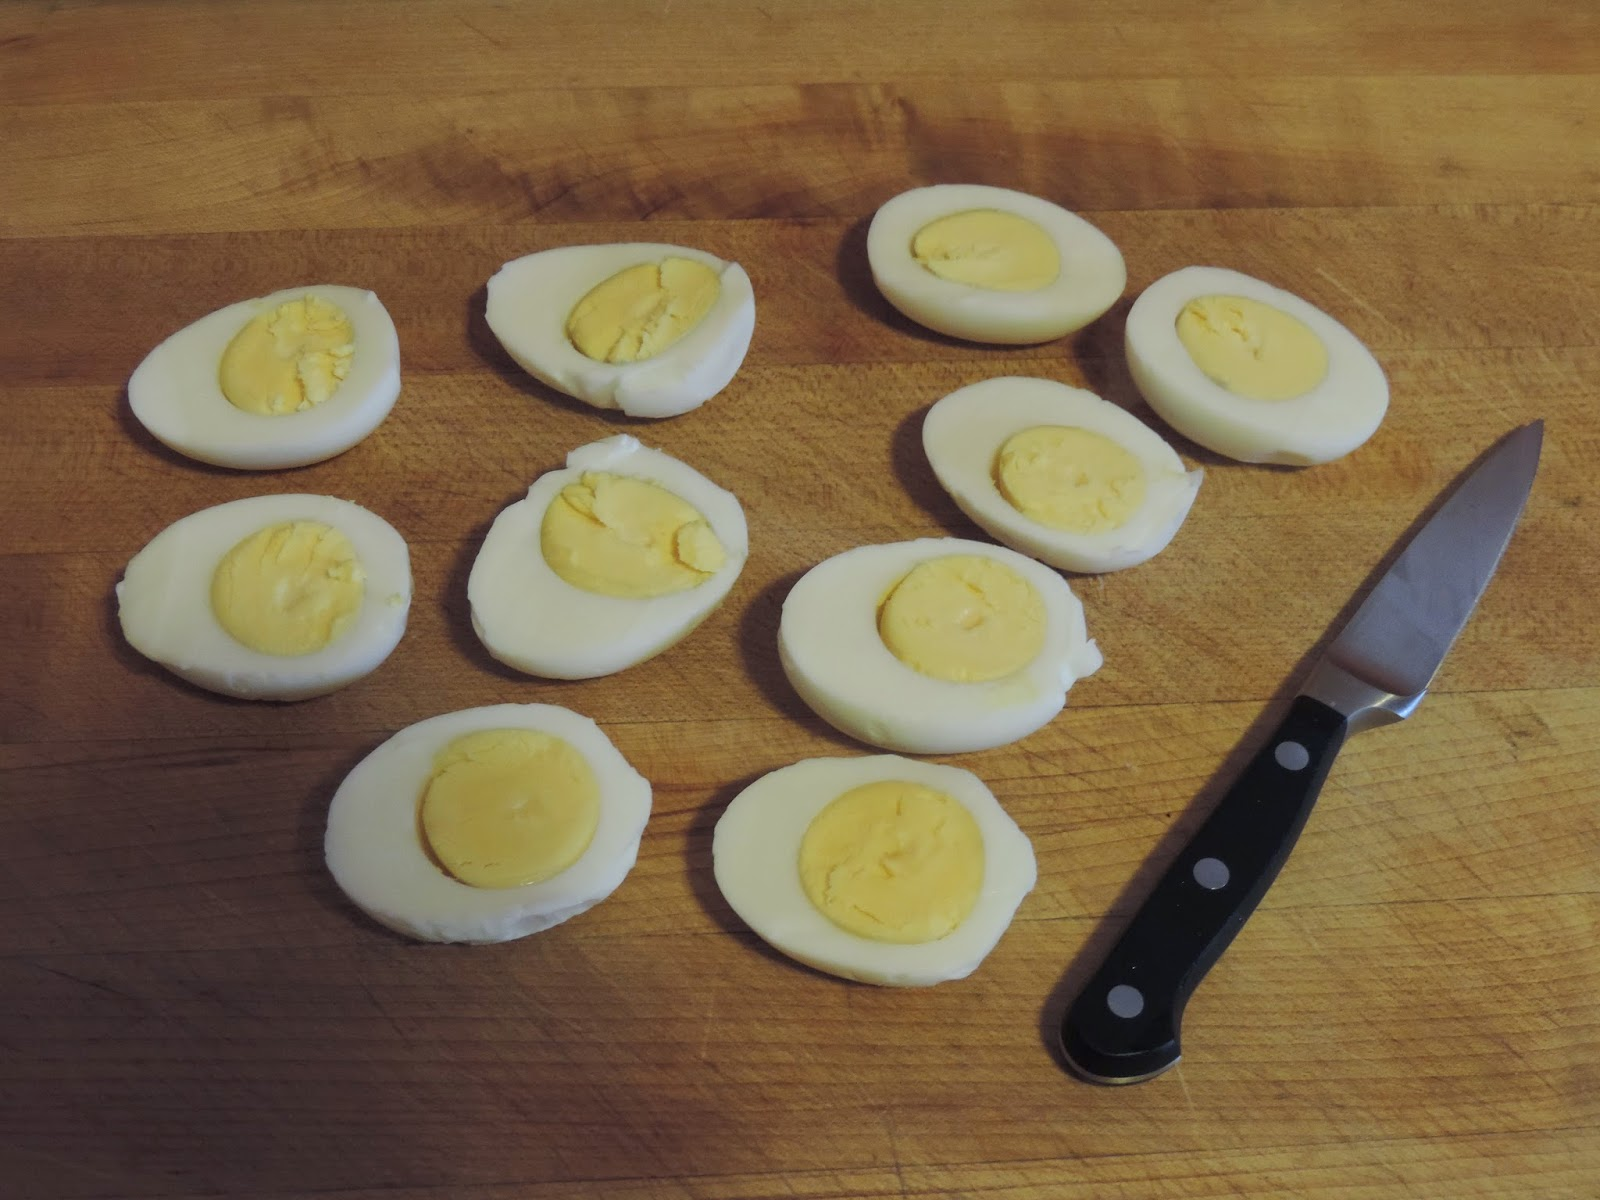 The hard boiled eggs cut in half and placed on the cutting board.